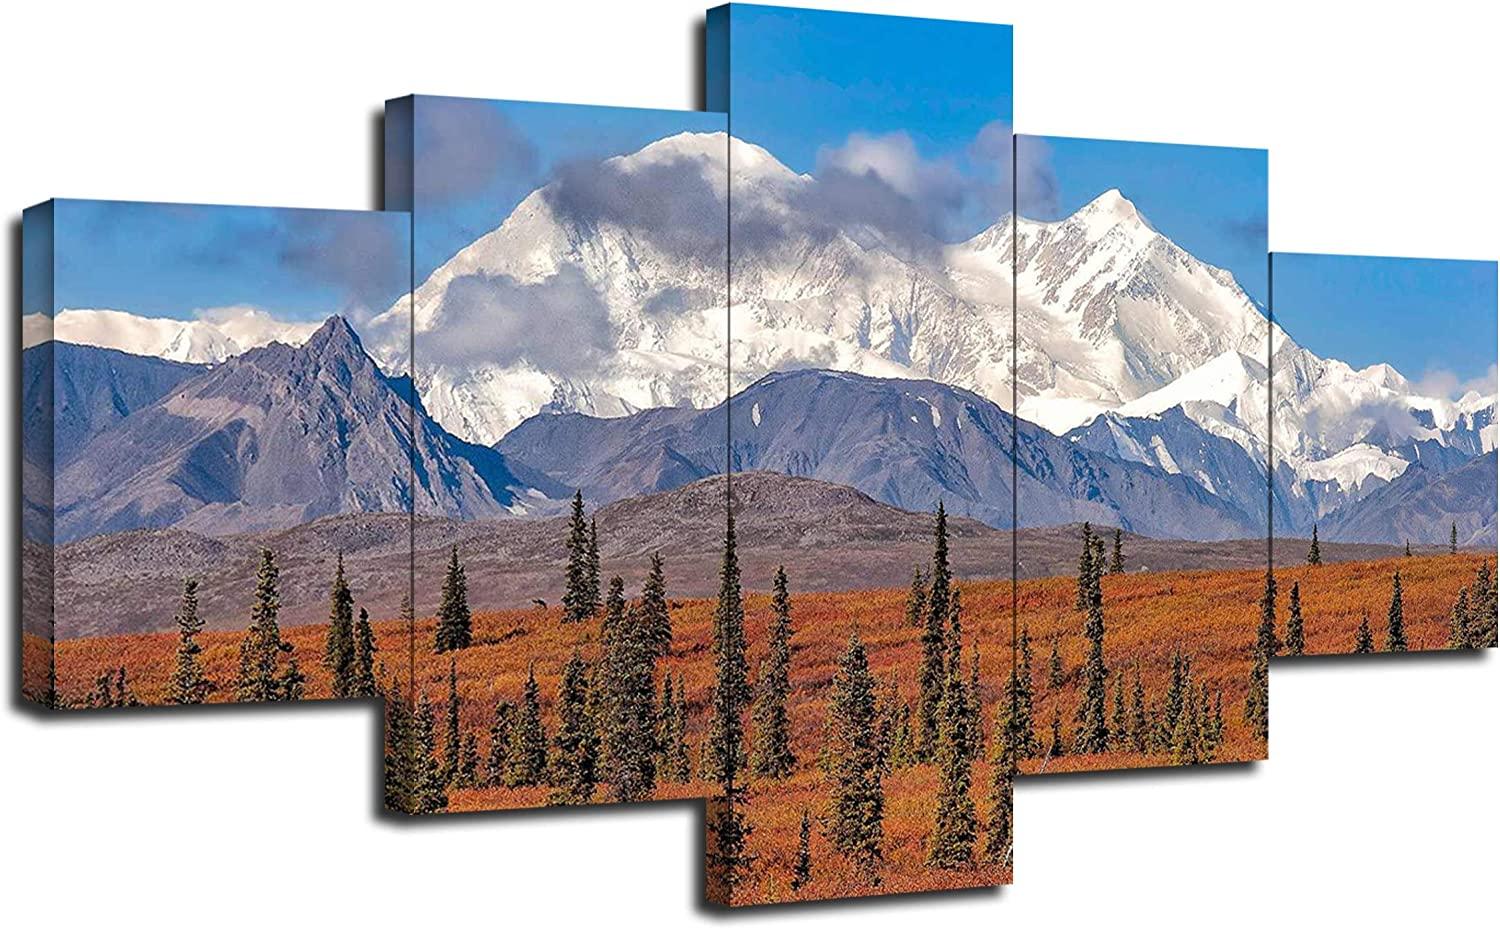 Denali National Park Mount McKinley Landscape Wall Decor America Alaska Wall Art Picture Canvas Print Poster Painting Framed Living Room Decoration 5 Panel Ready to Hang(60''Wx32''H)